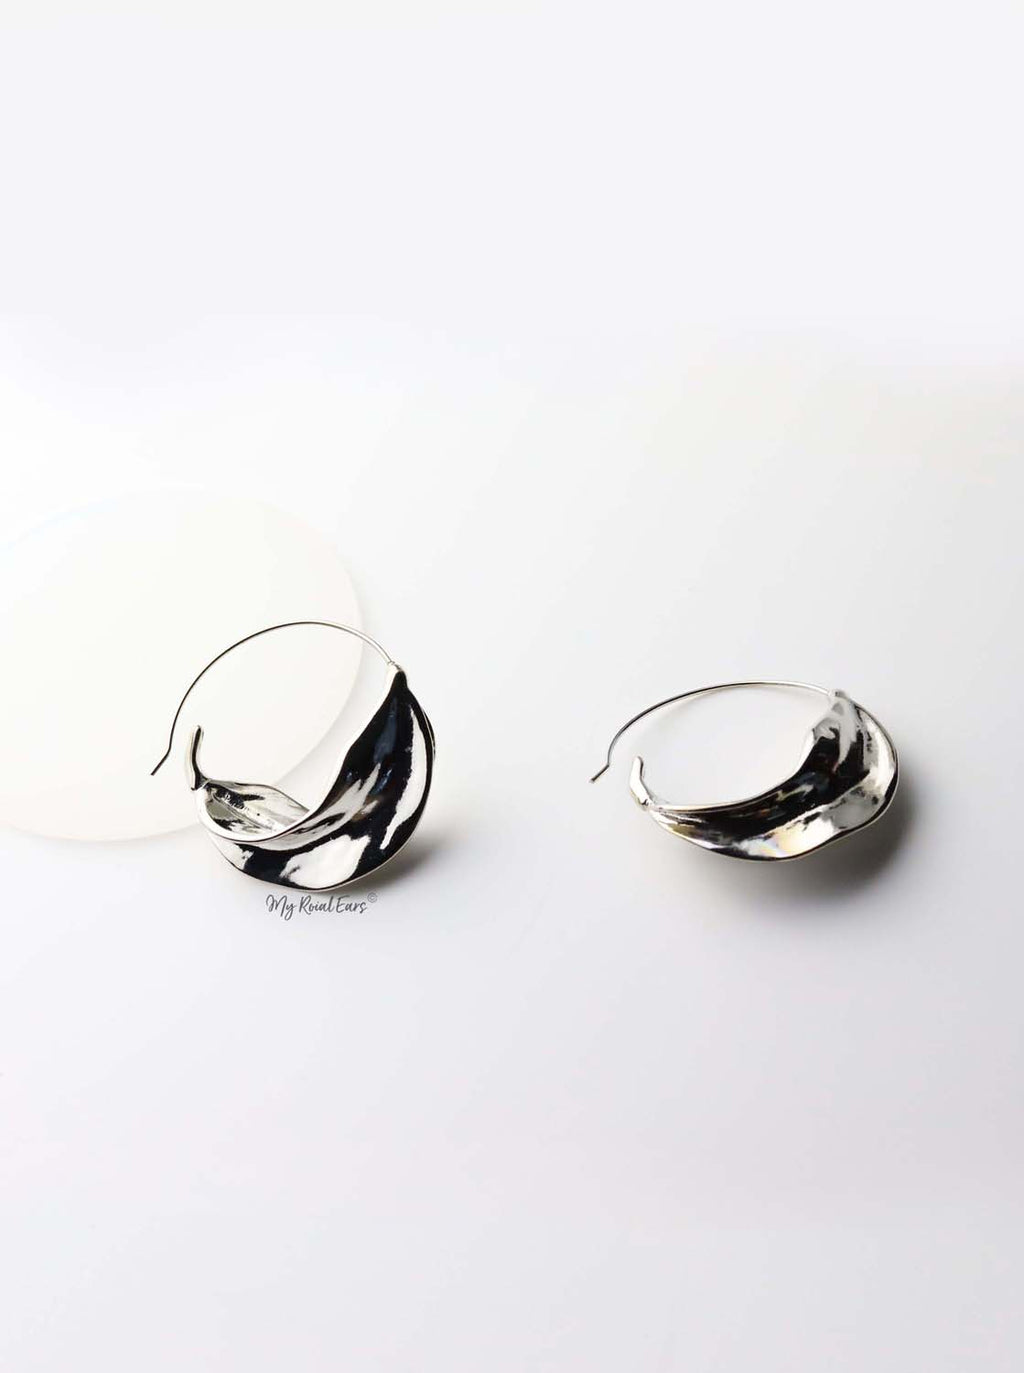 Alcippe Silver- leaf-inspired hoop earrings - My Roial Ears LTD